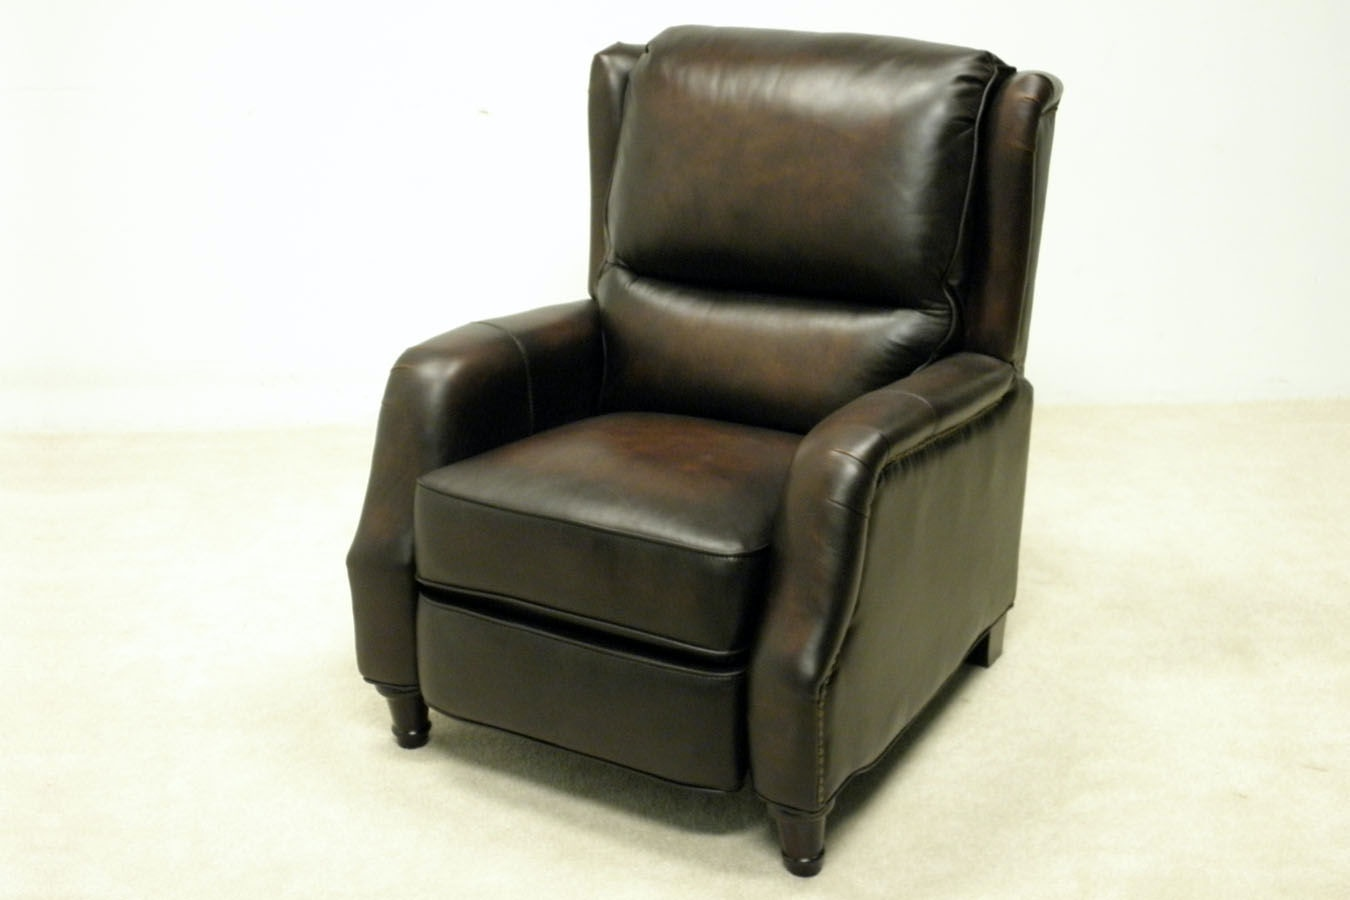 Furniture Consignment Asheville Nc ... Living Room 34'' Recliner 3333-R at High Country Furniture & Design